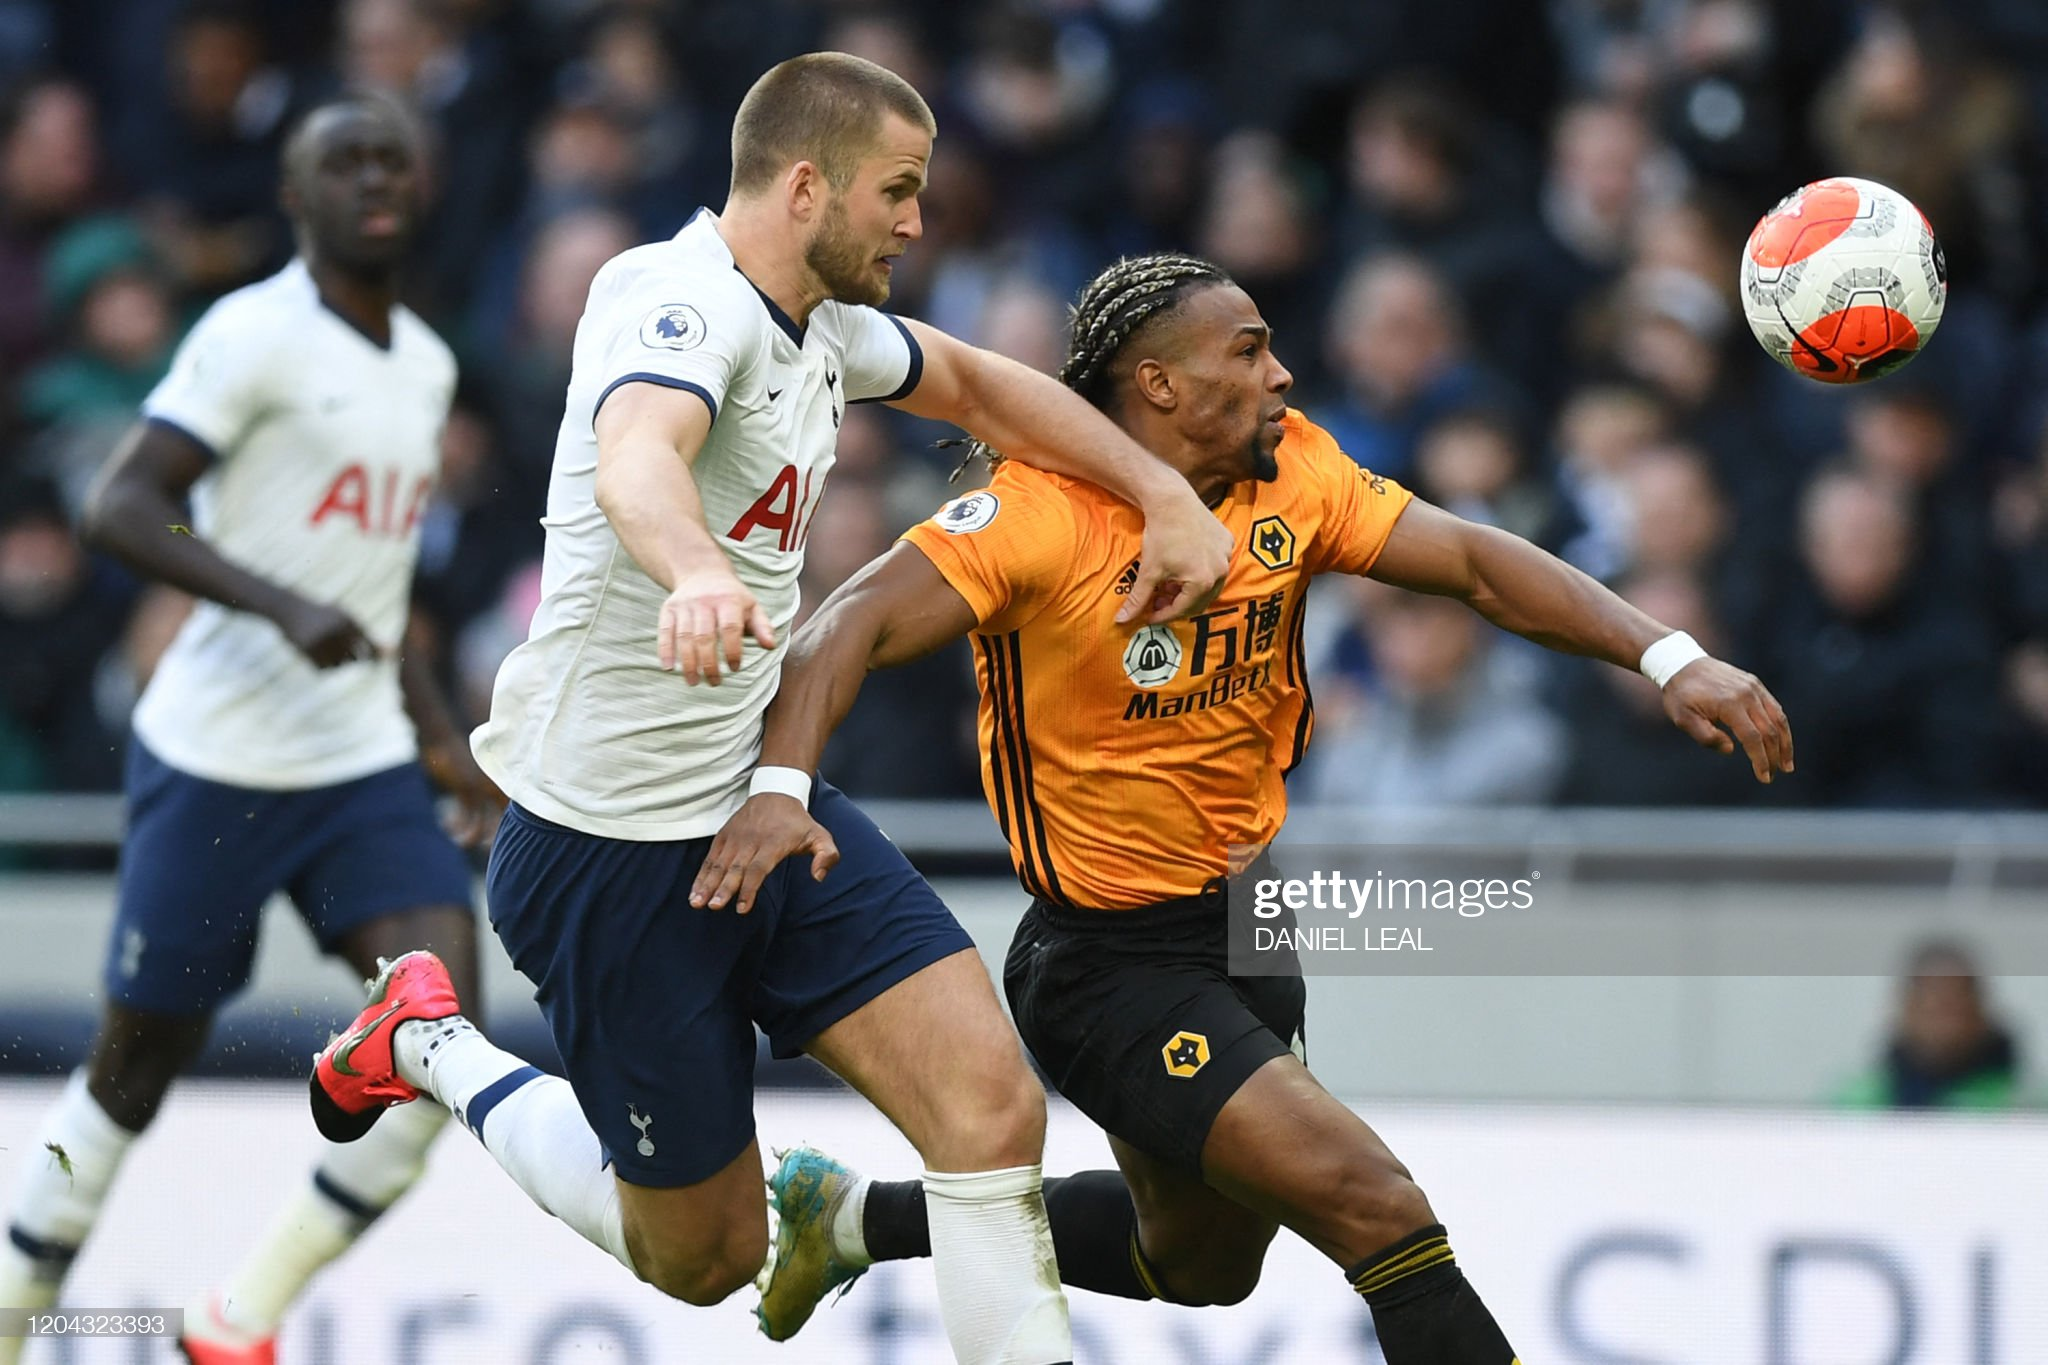 Wolves vs Tottenham preview, prediction and odds